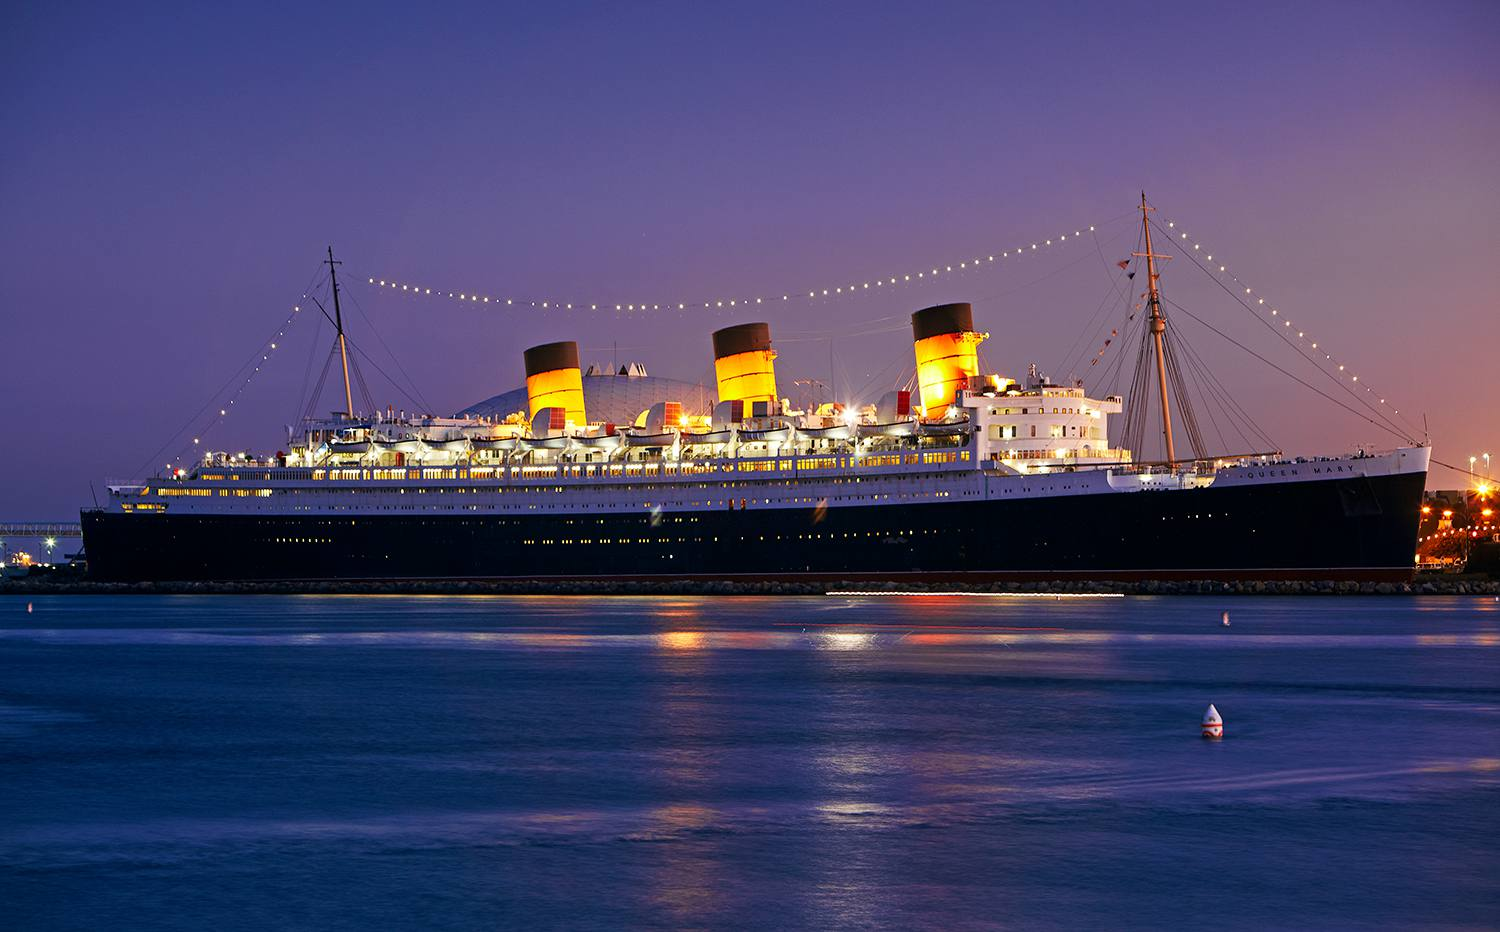 A 1936 art deco ocean liner now permanently docked at Long Beach harbor.